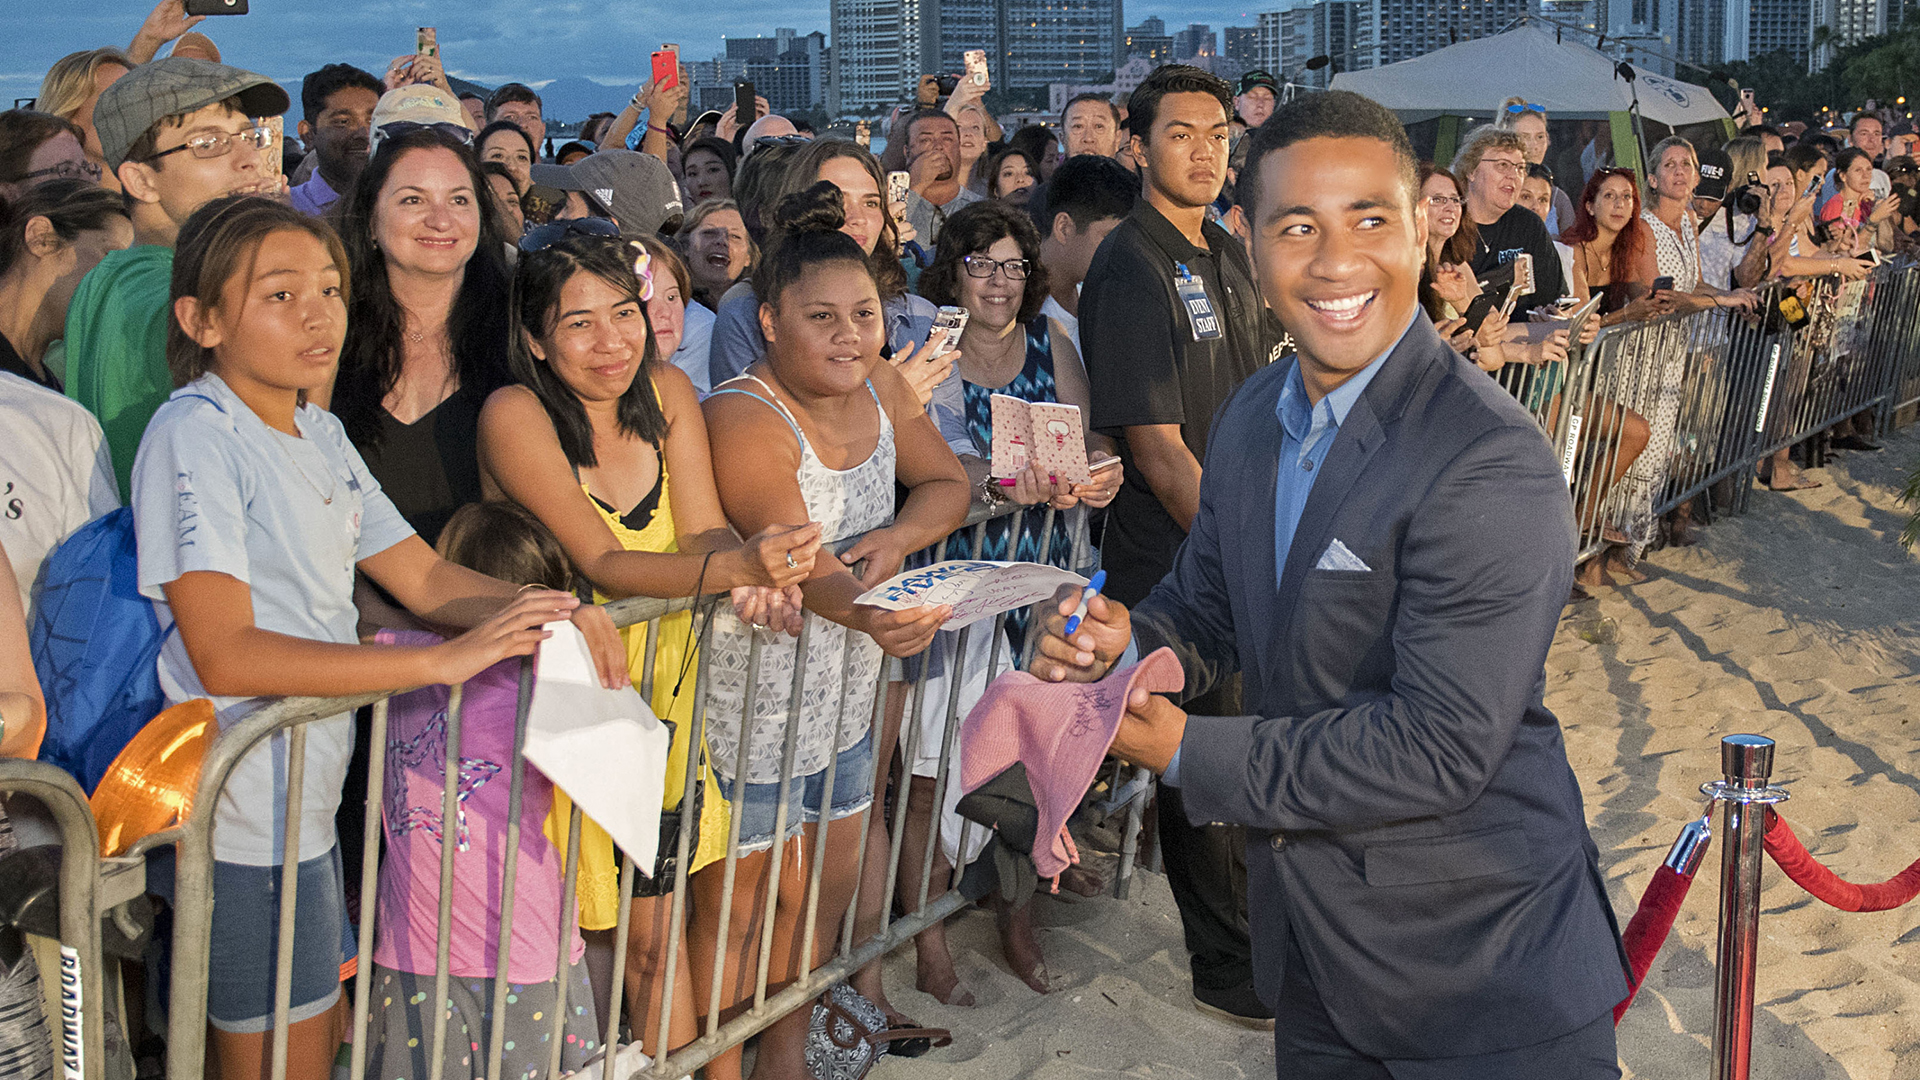 Beulah Koale turns to smile as he signs autographs for fans on the red carpet.